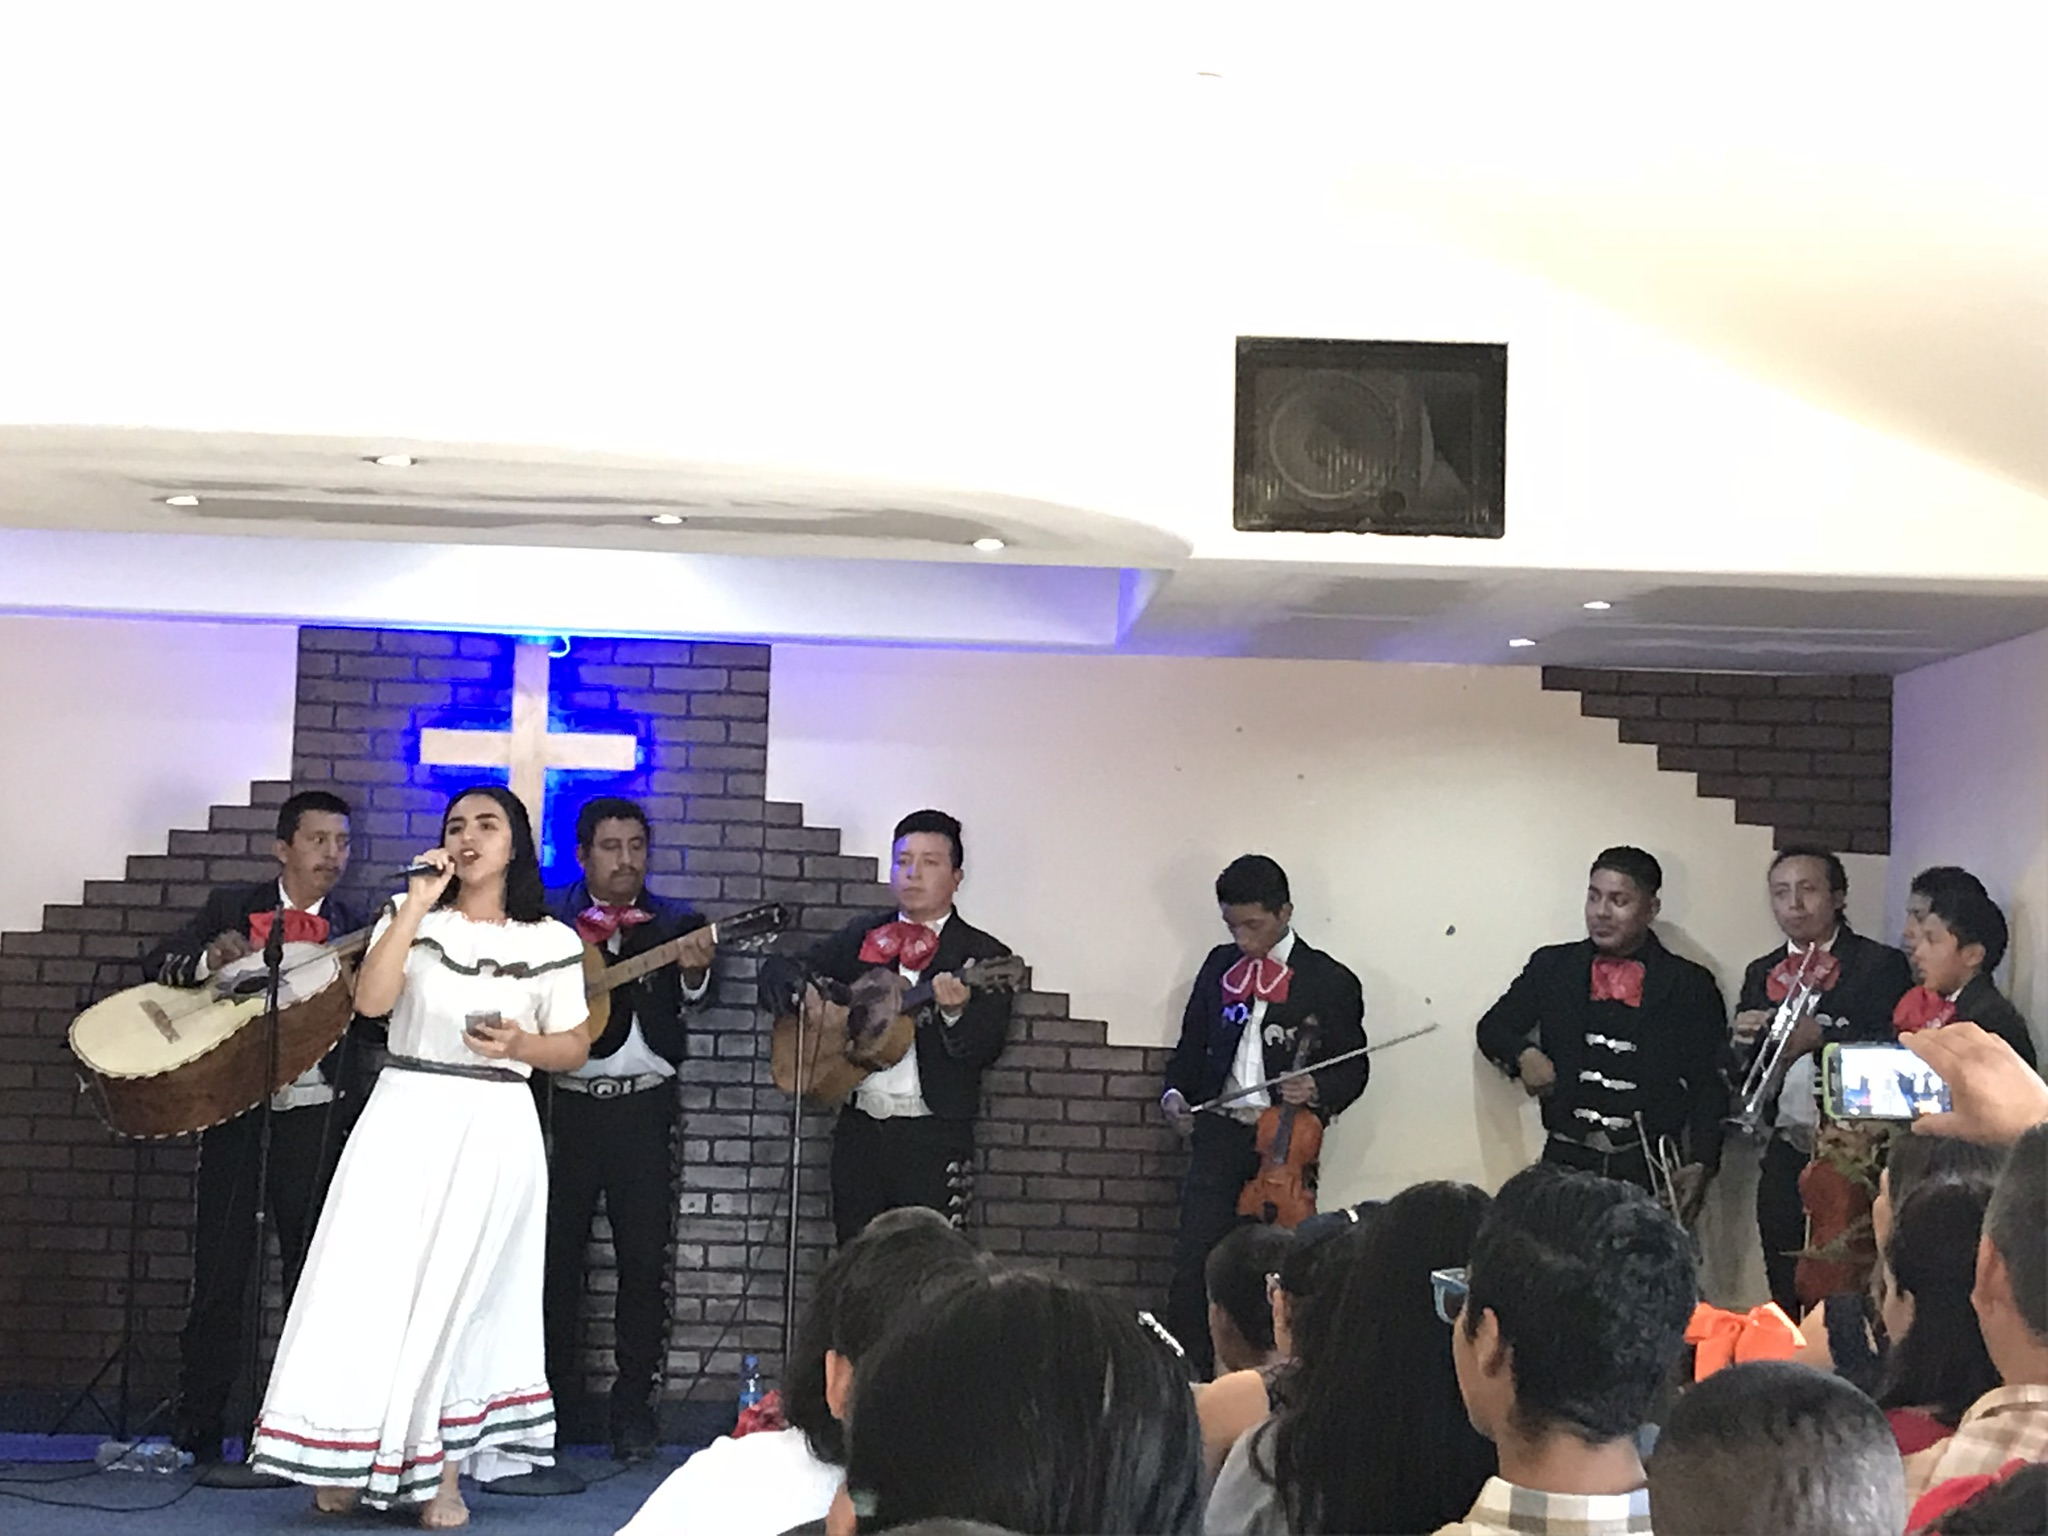 The Mariachis leading worship